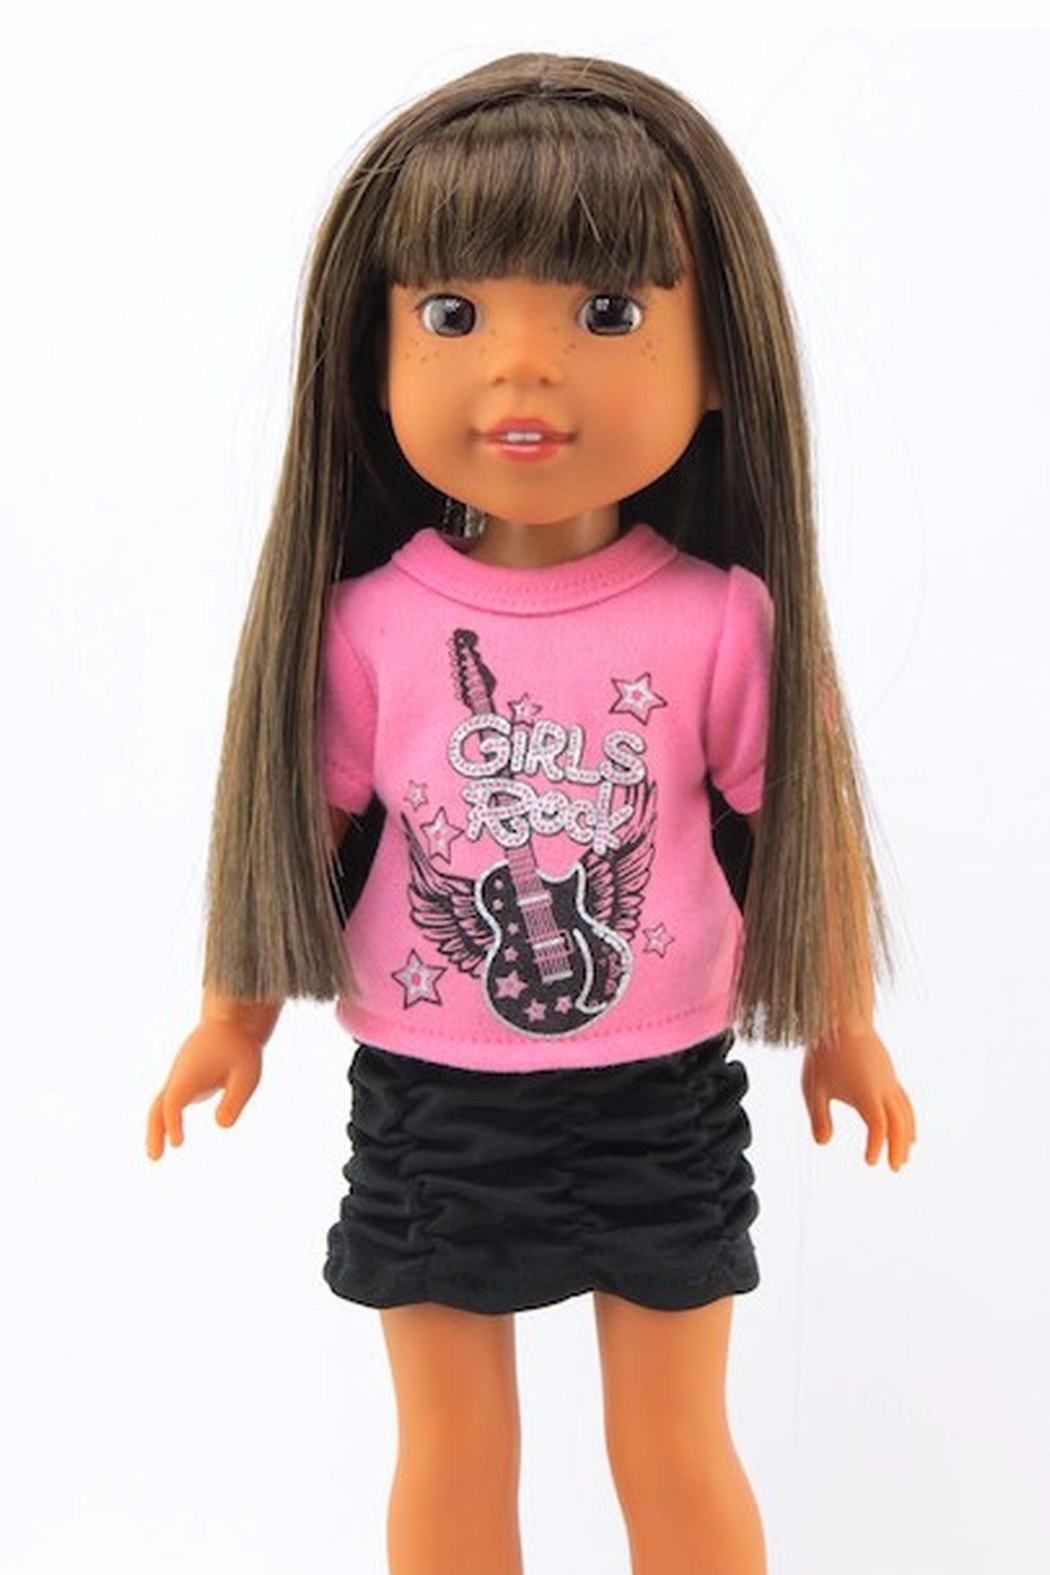 American Fashion World Doll Girls Rock - Main Image